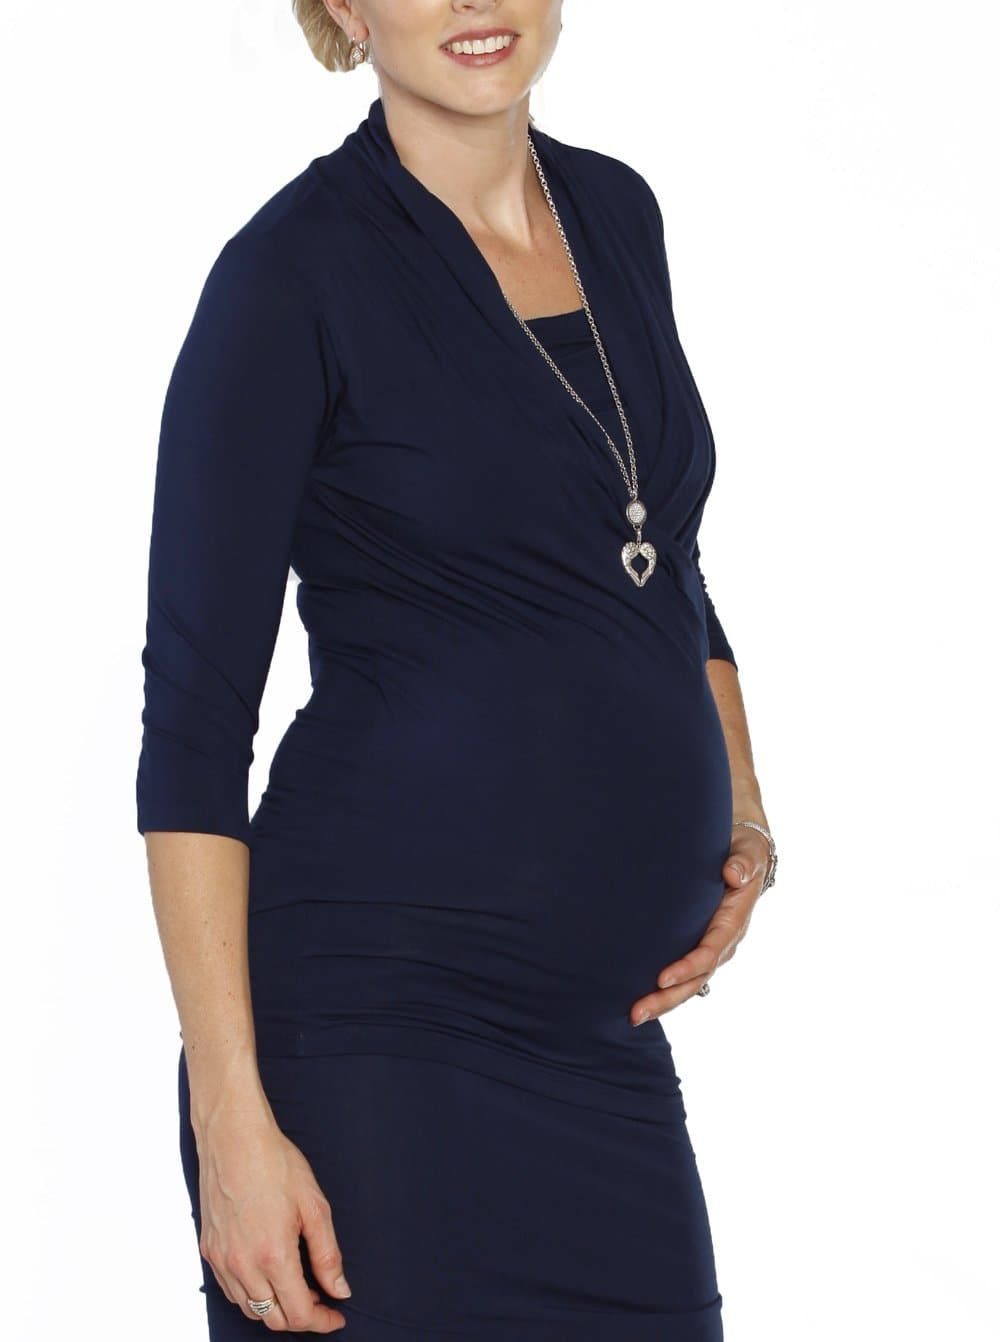 The V-Neck Crossover Maternity Top - Navy